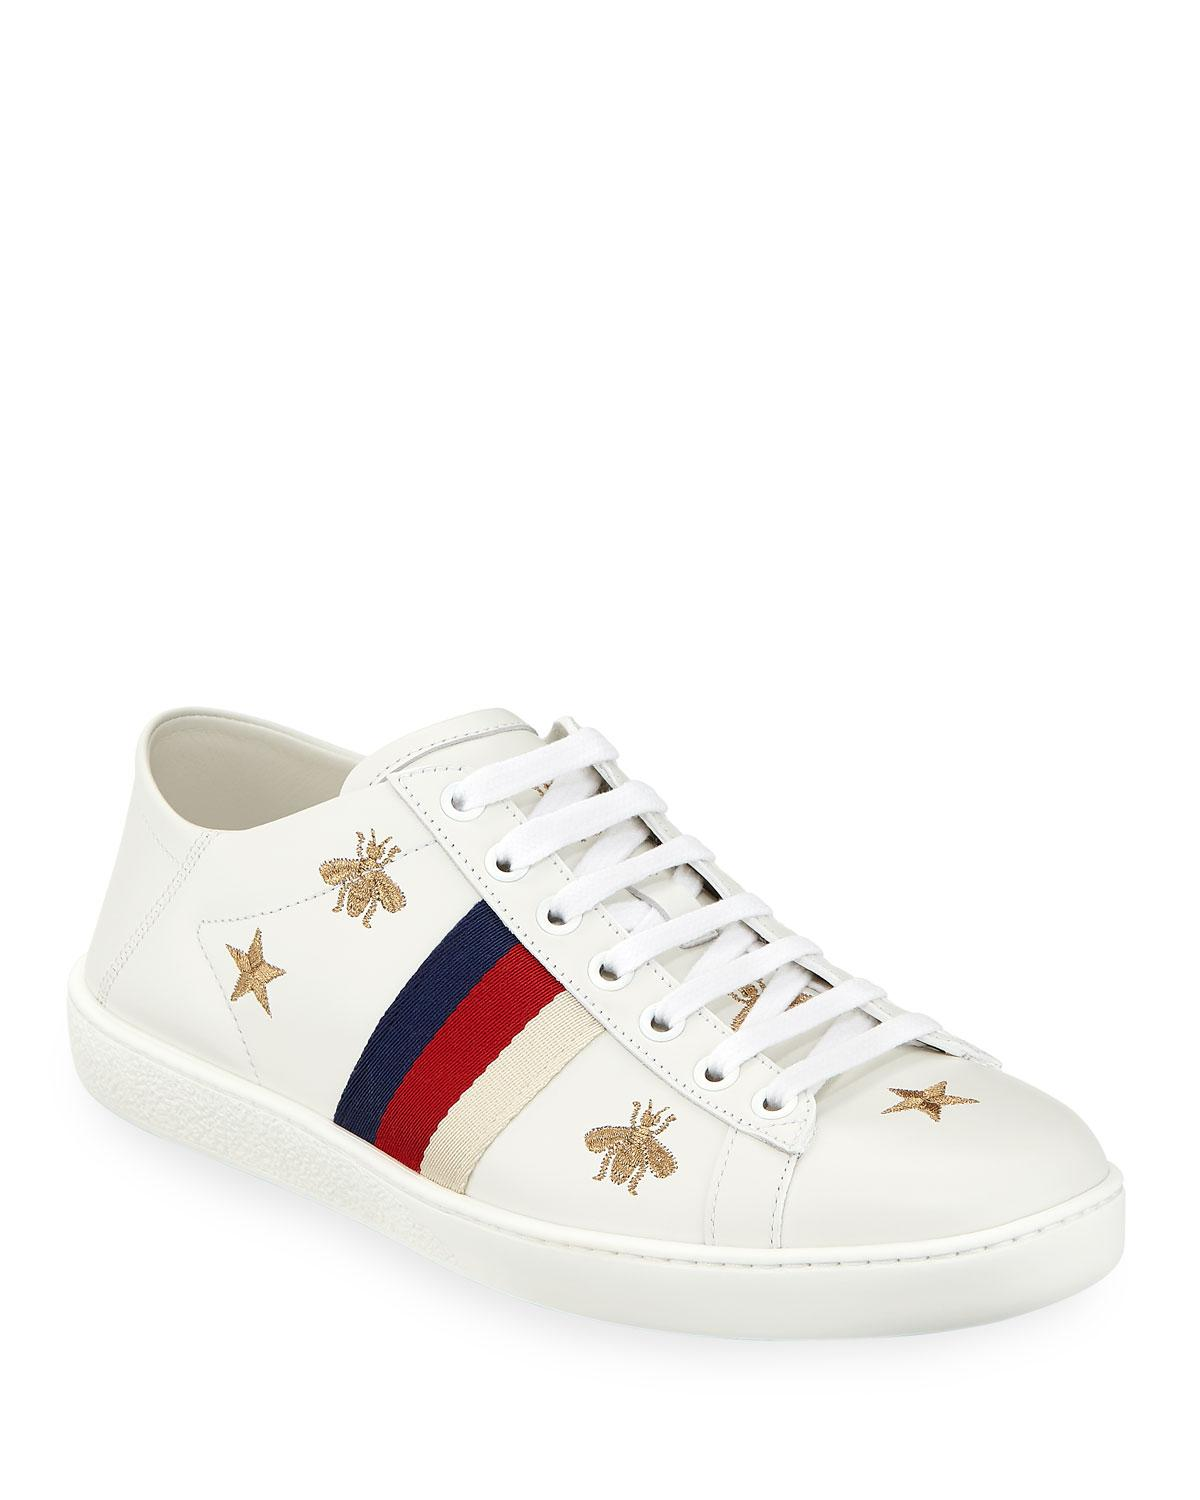 Lyst - Gucci Ace Star   Bee Fold-down Sneakers in White ddfb8354da48